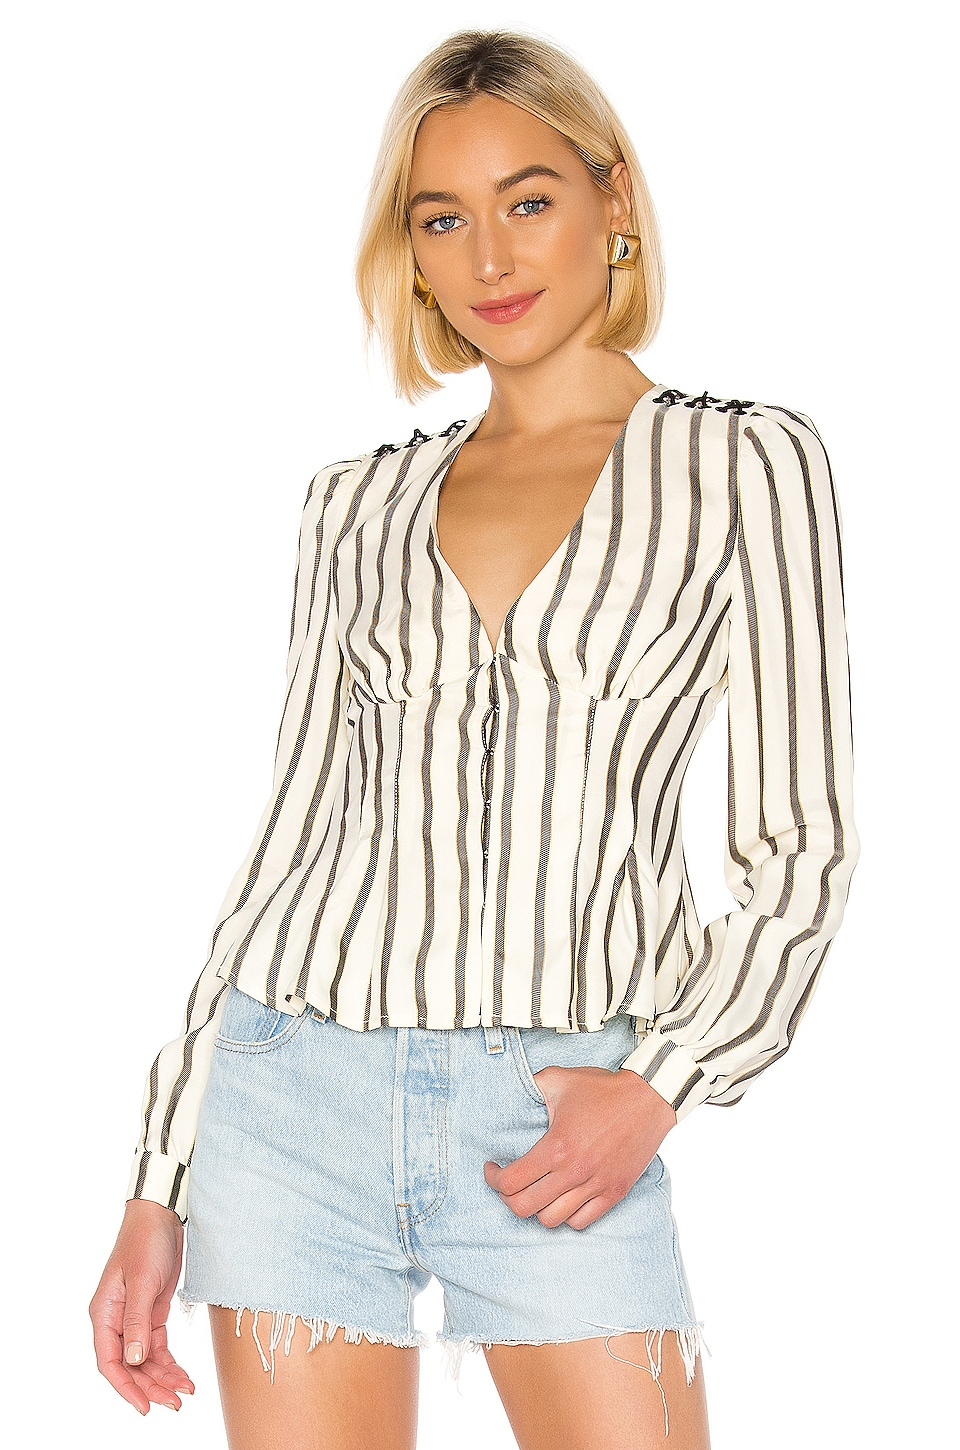 House of Harlow 1960 X REVOLVE Milan Blouse in Ivory & Black Stripe